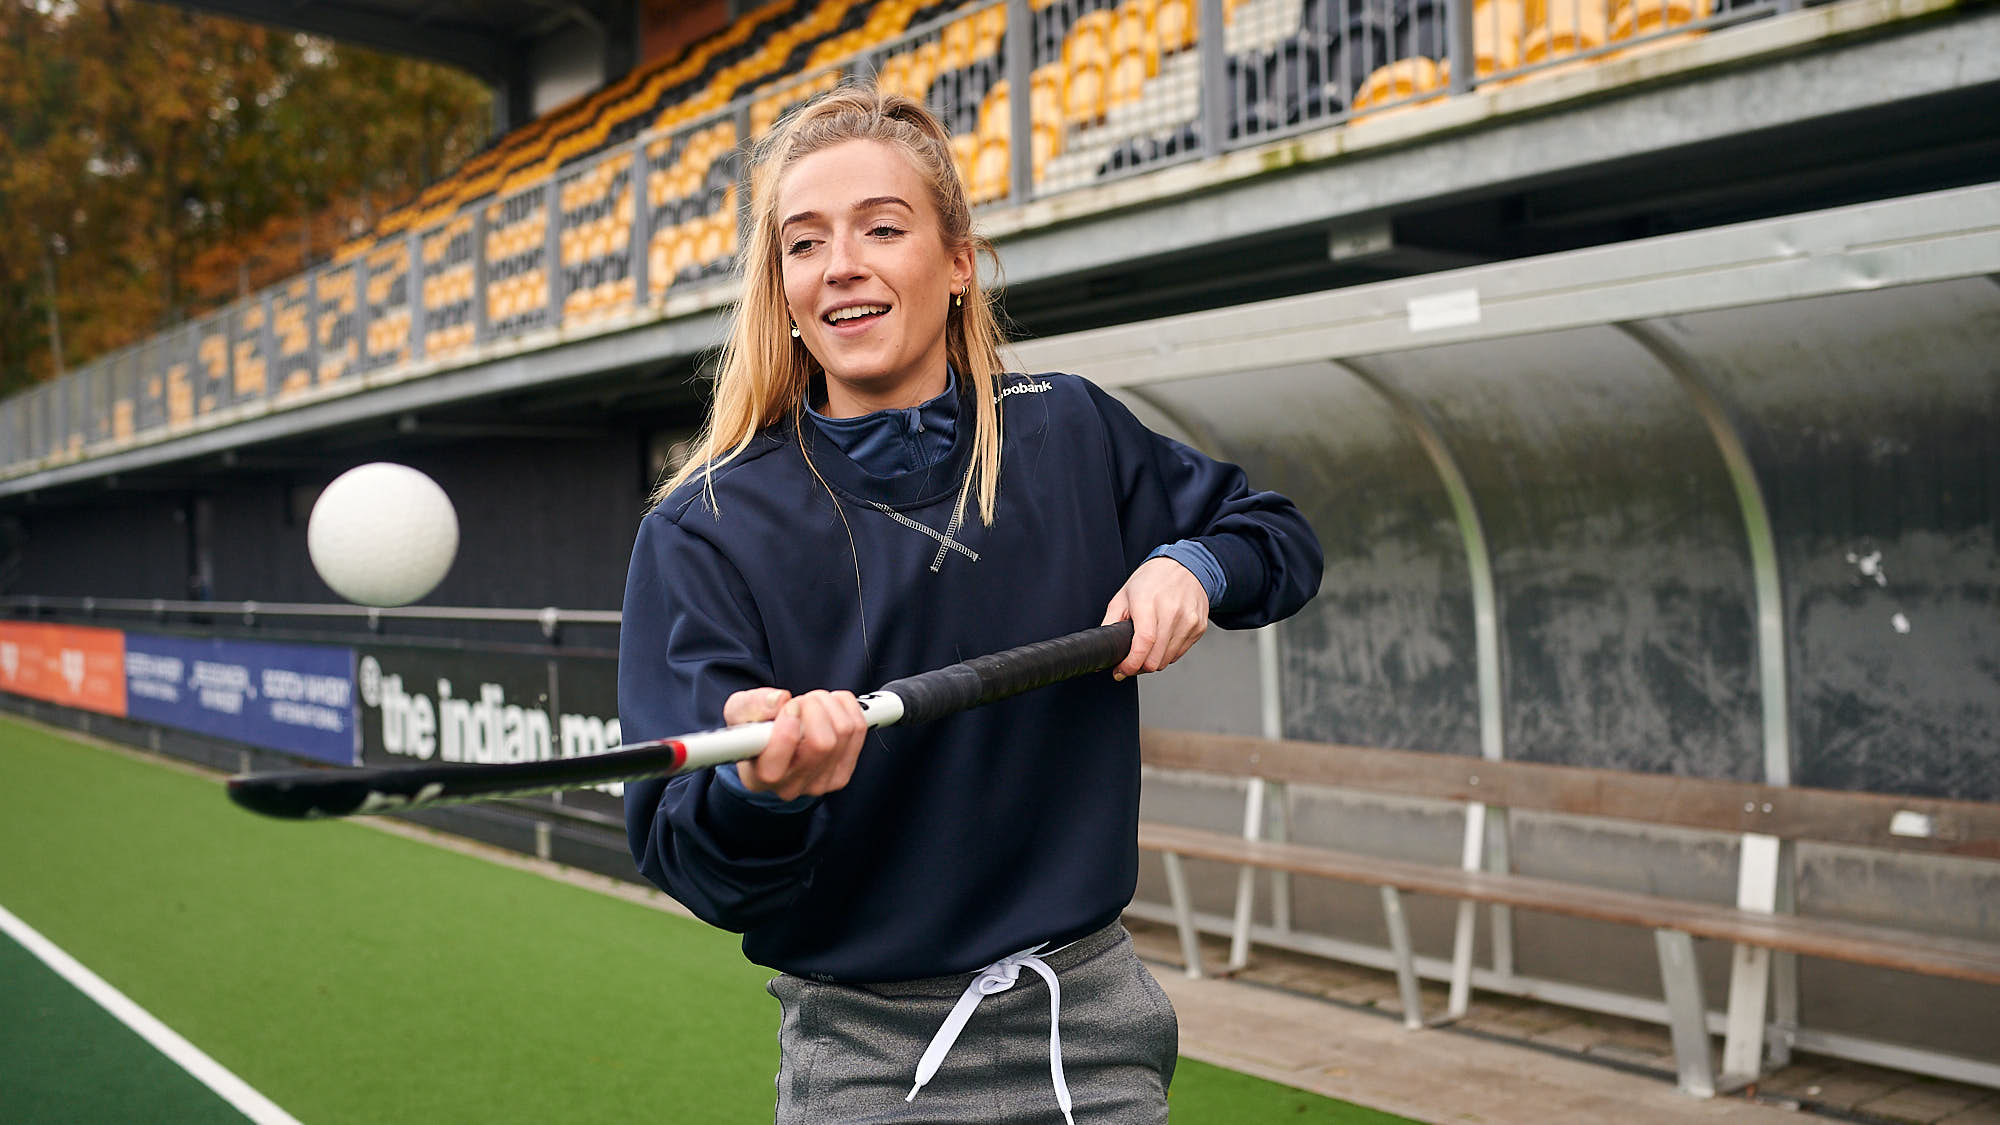 Dutch athlete Sanne Koolen handling a hockey ball